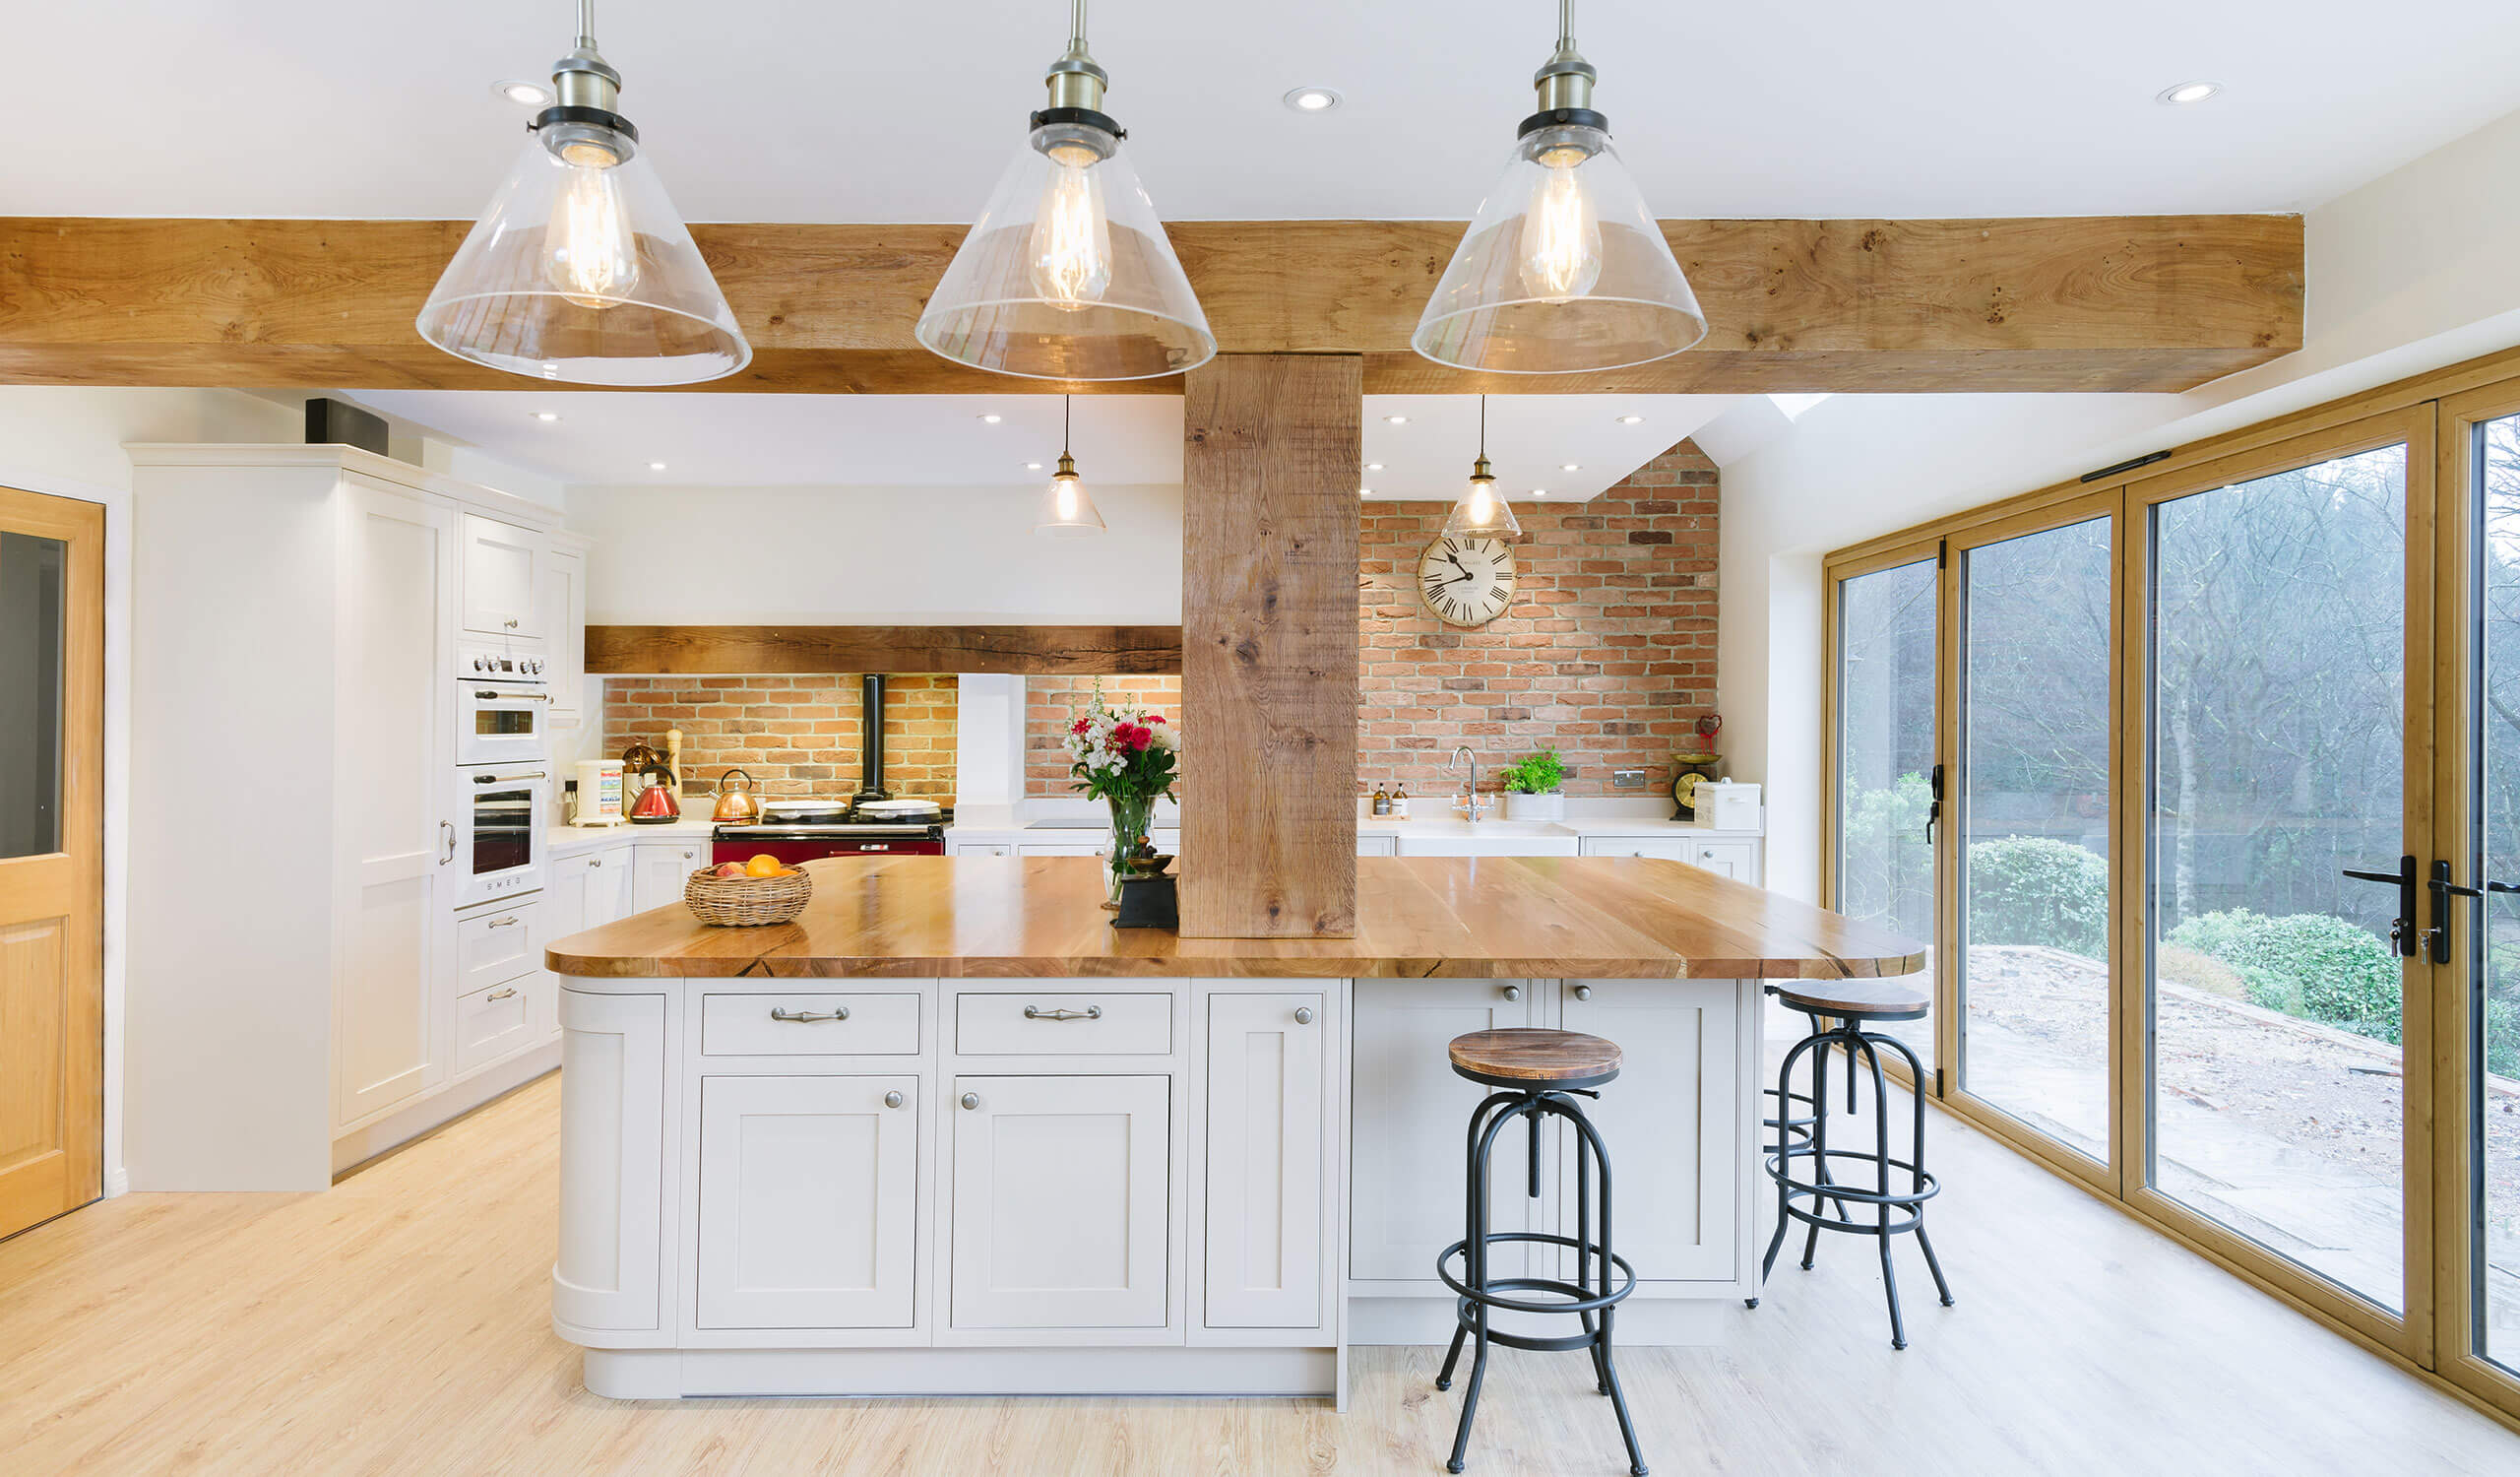 Kitchen Redesign in Bolney lighting